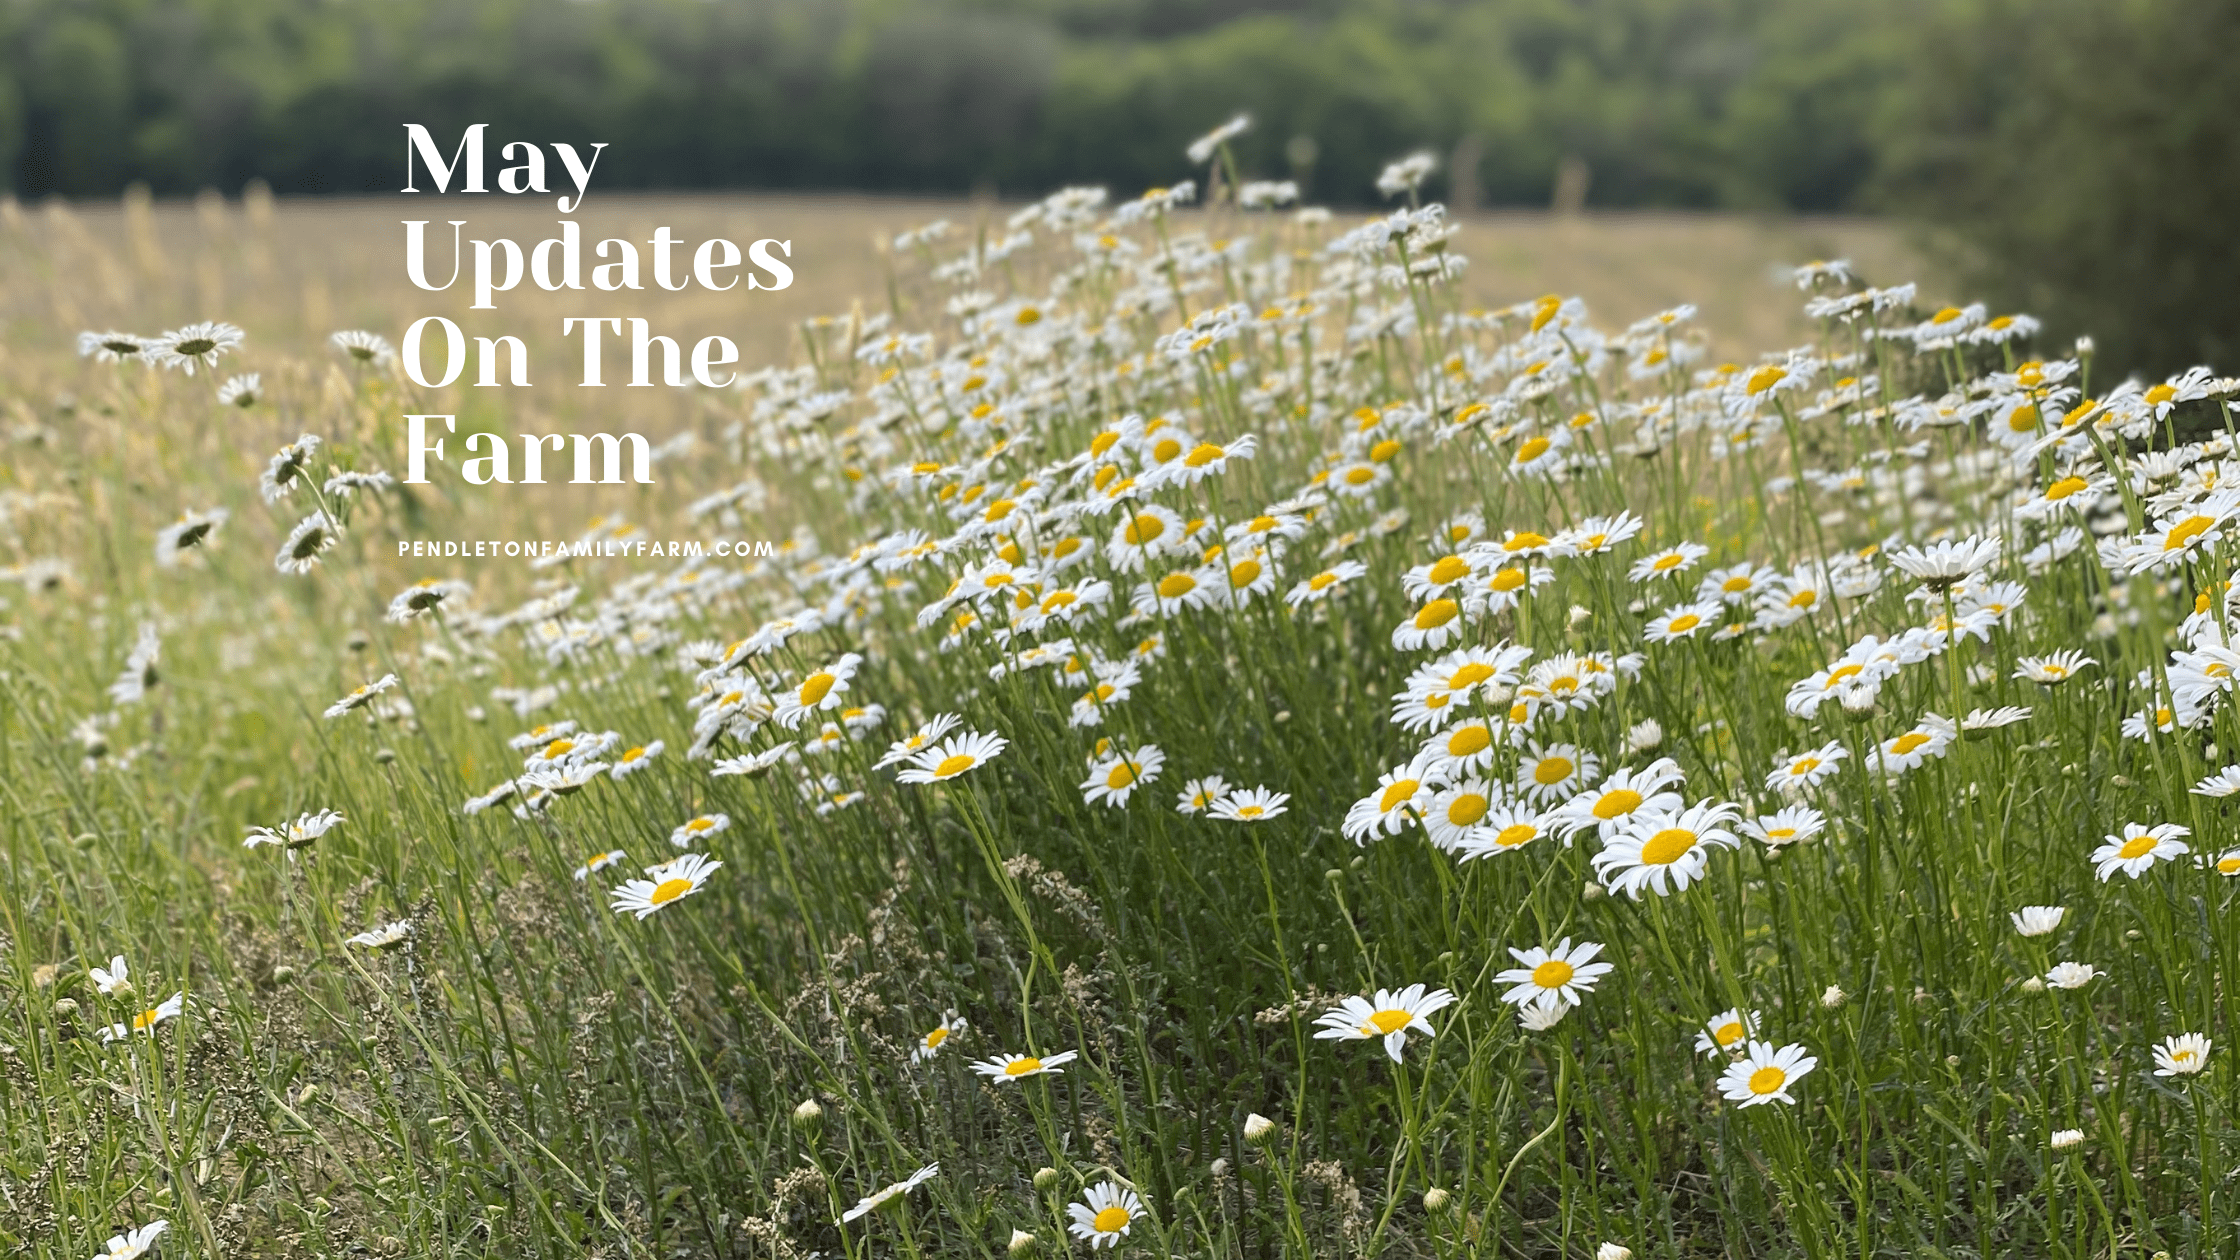 May Updates on the Farm